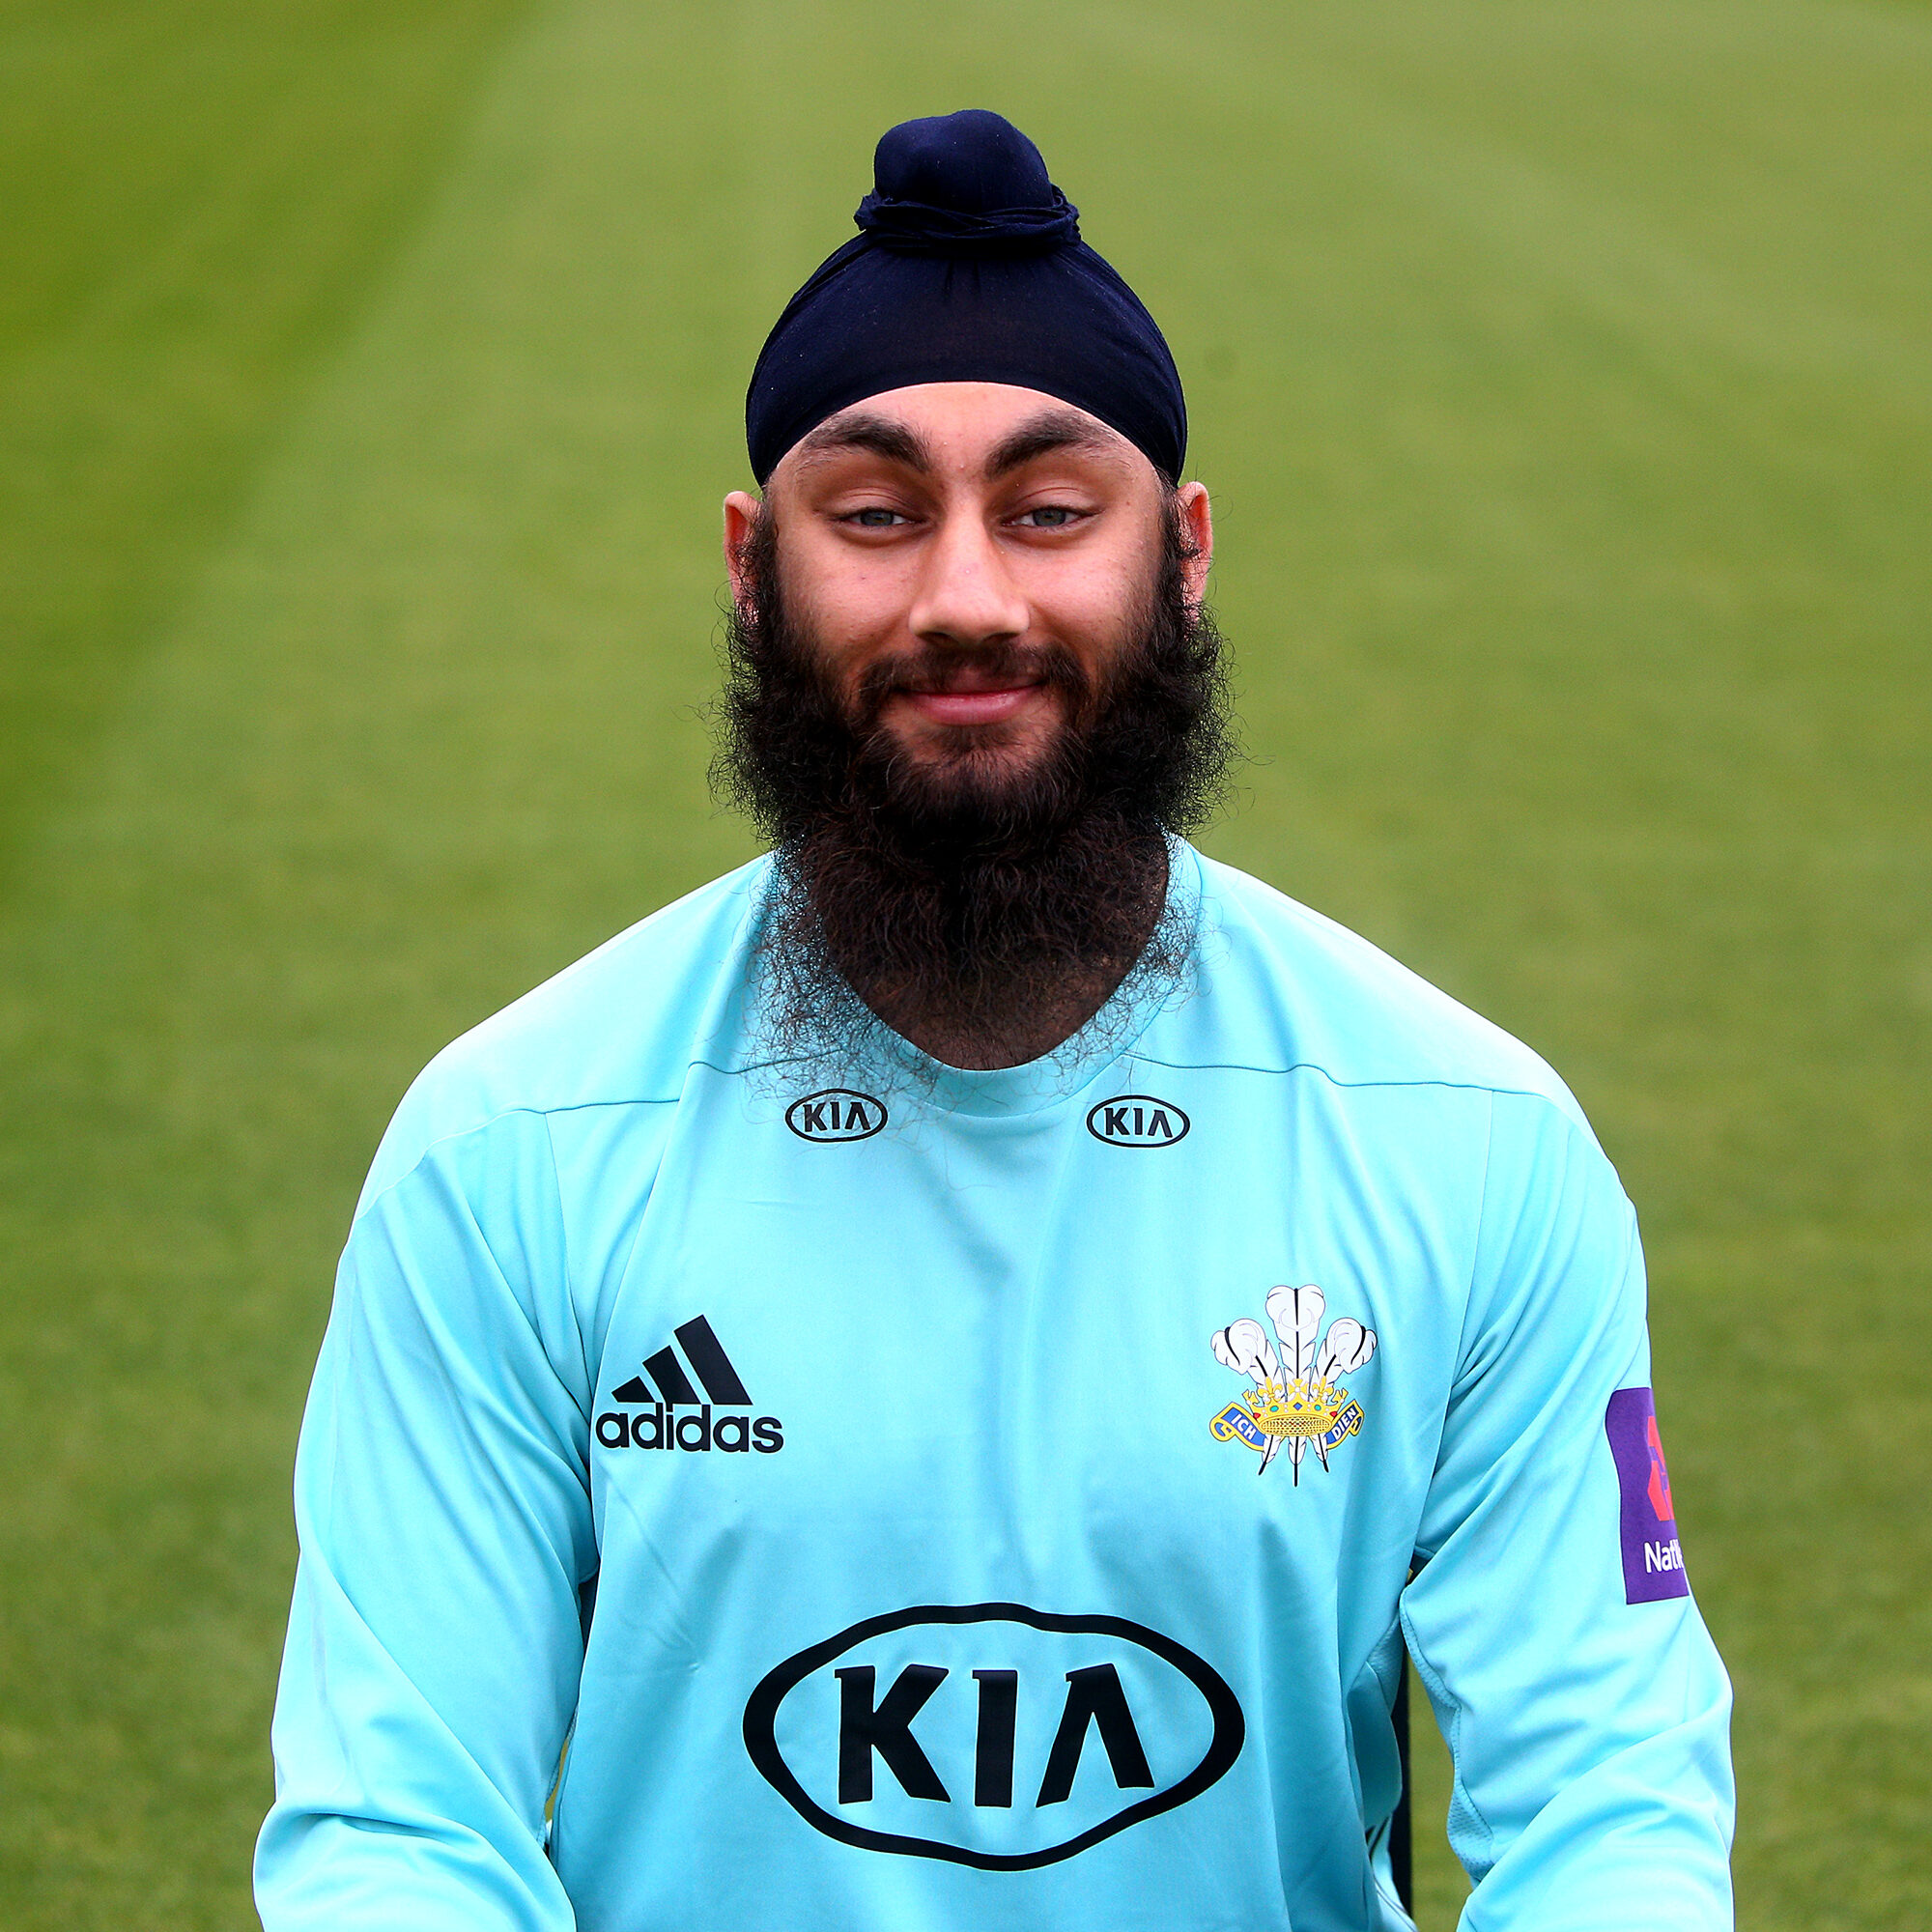 LONDON, ENGLAND - APRIL 04: Amar Virdi poses in the NatWest T20 Blast kit during the Surrey CCC Photocall at The Kia Oval on April 4, 2017 in London, England. (Photo by Charlie Crowhurst/Getty Images)